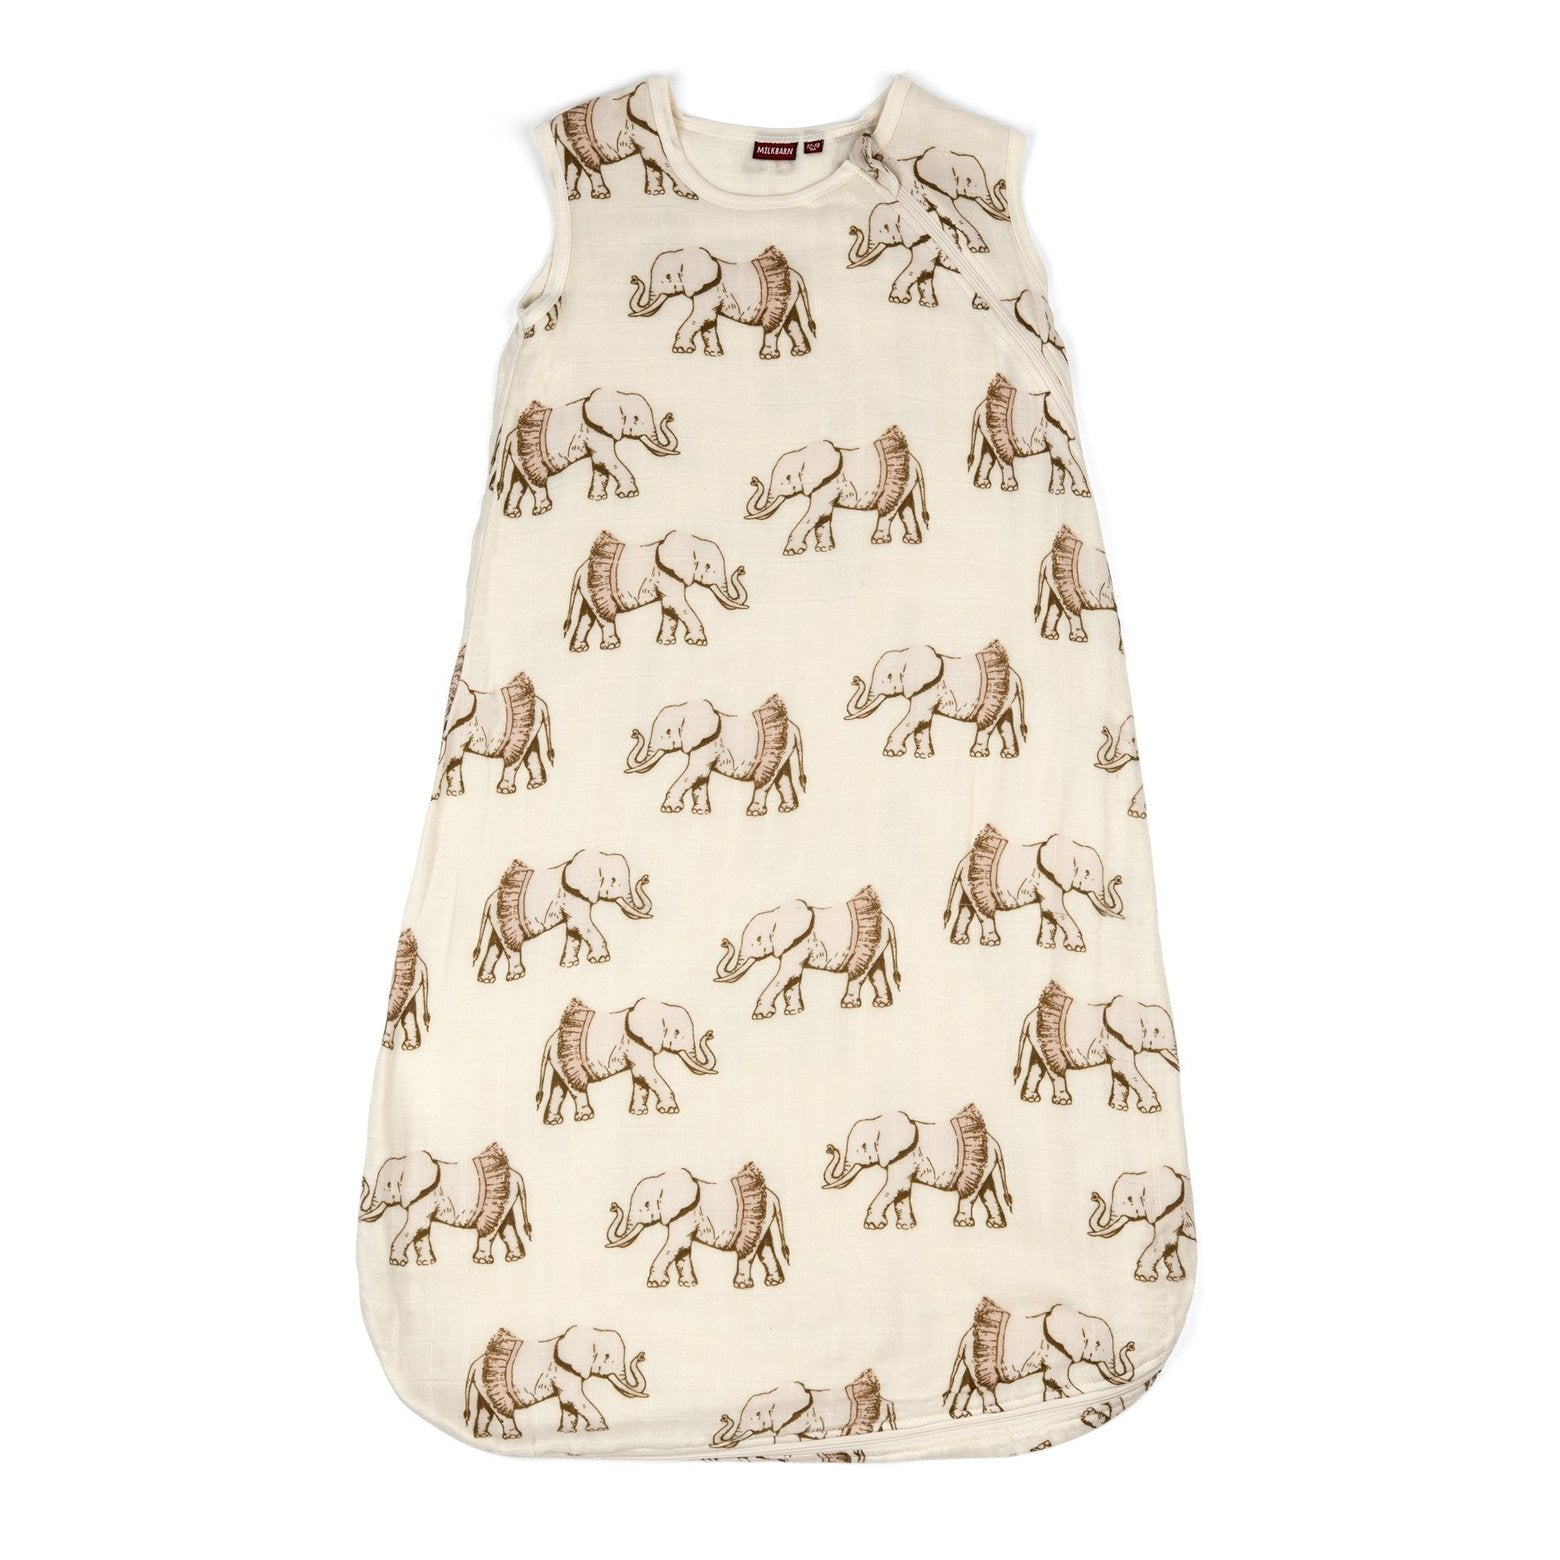 Bamboo + Cotton Sleep Sack in Tutu Elephant